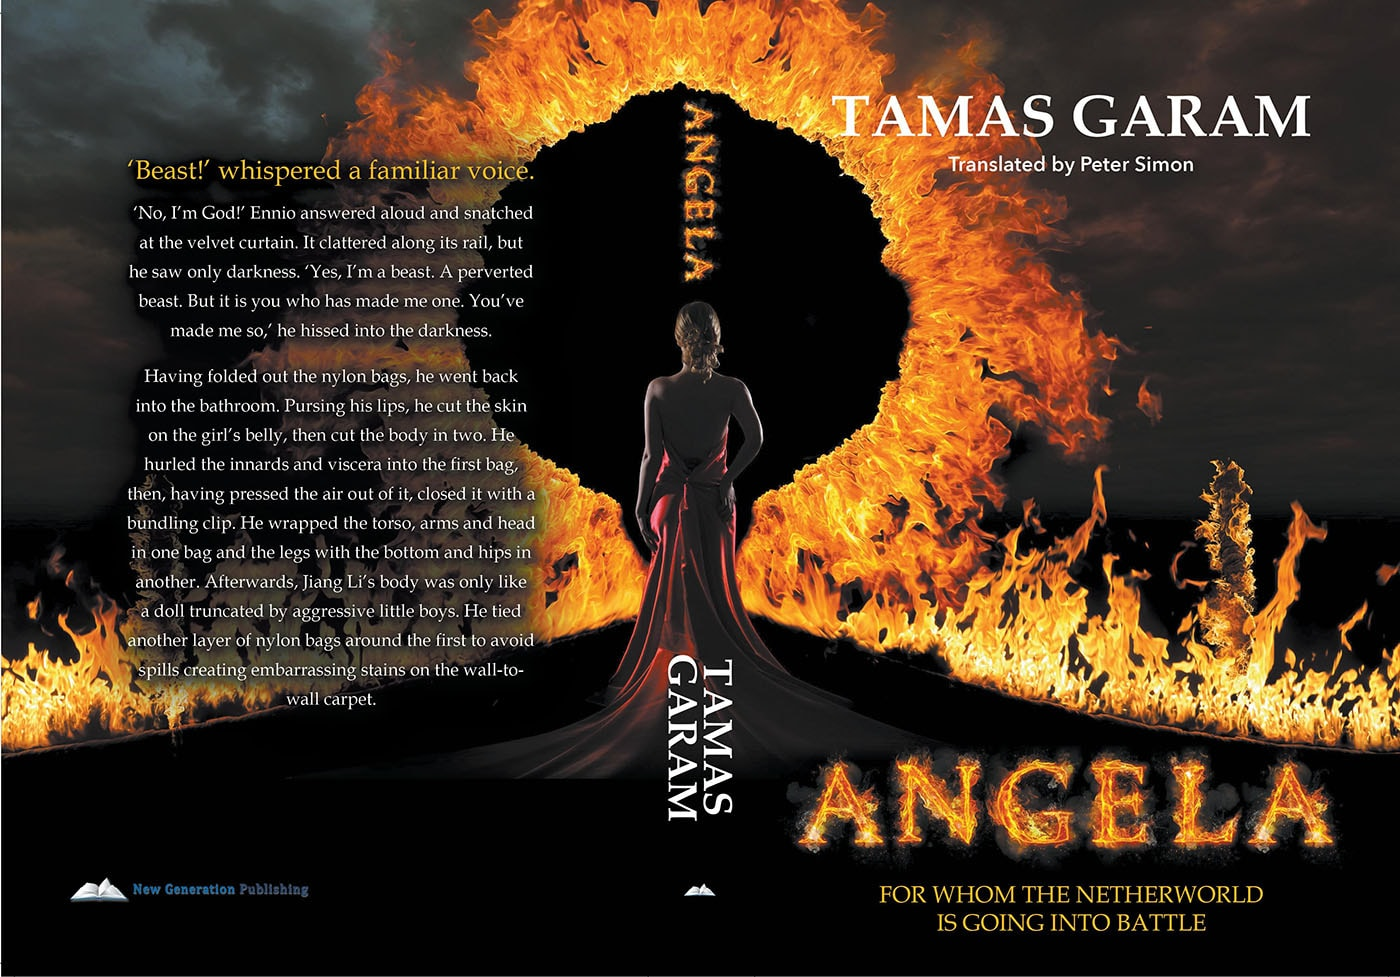 Angela book cover